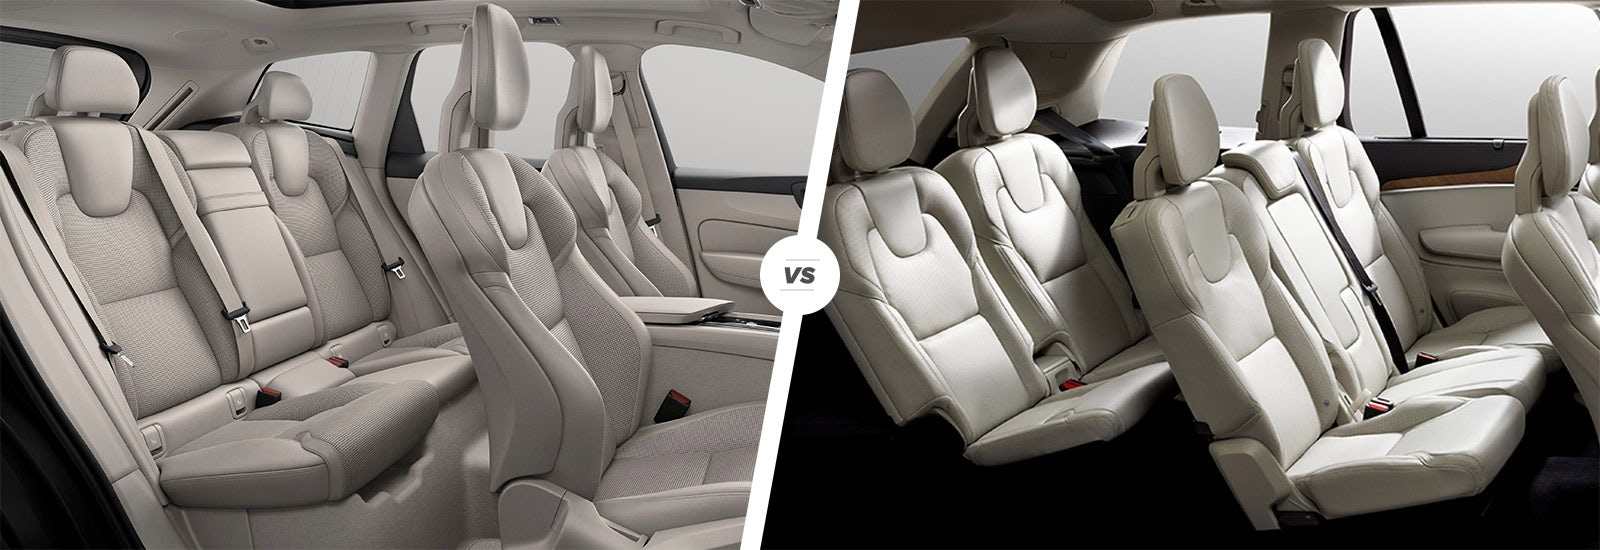 Volvo Xc60 Vs Xc90 Suv Comparison Carwow 2006 Engine Diagram Driving And Engines